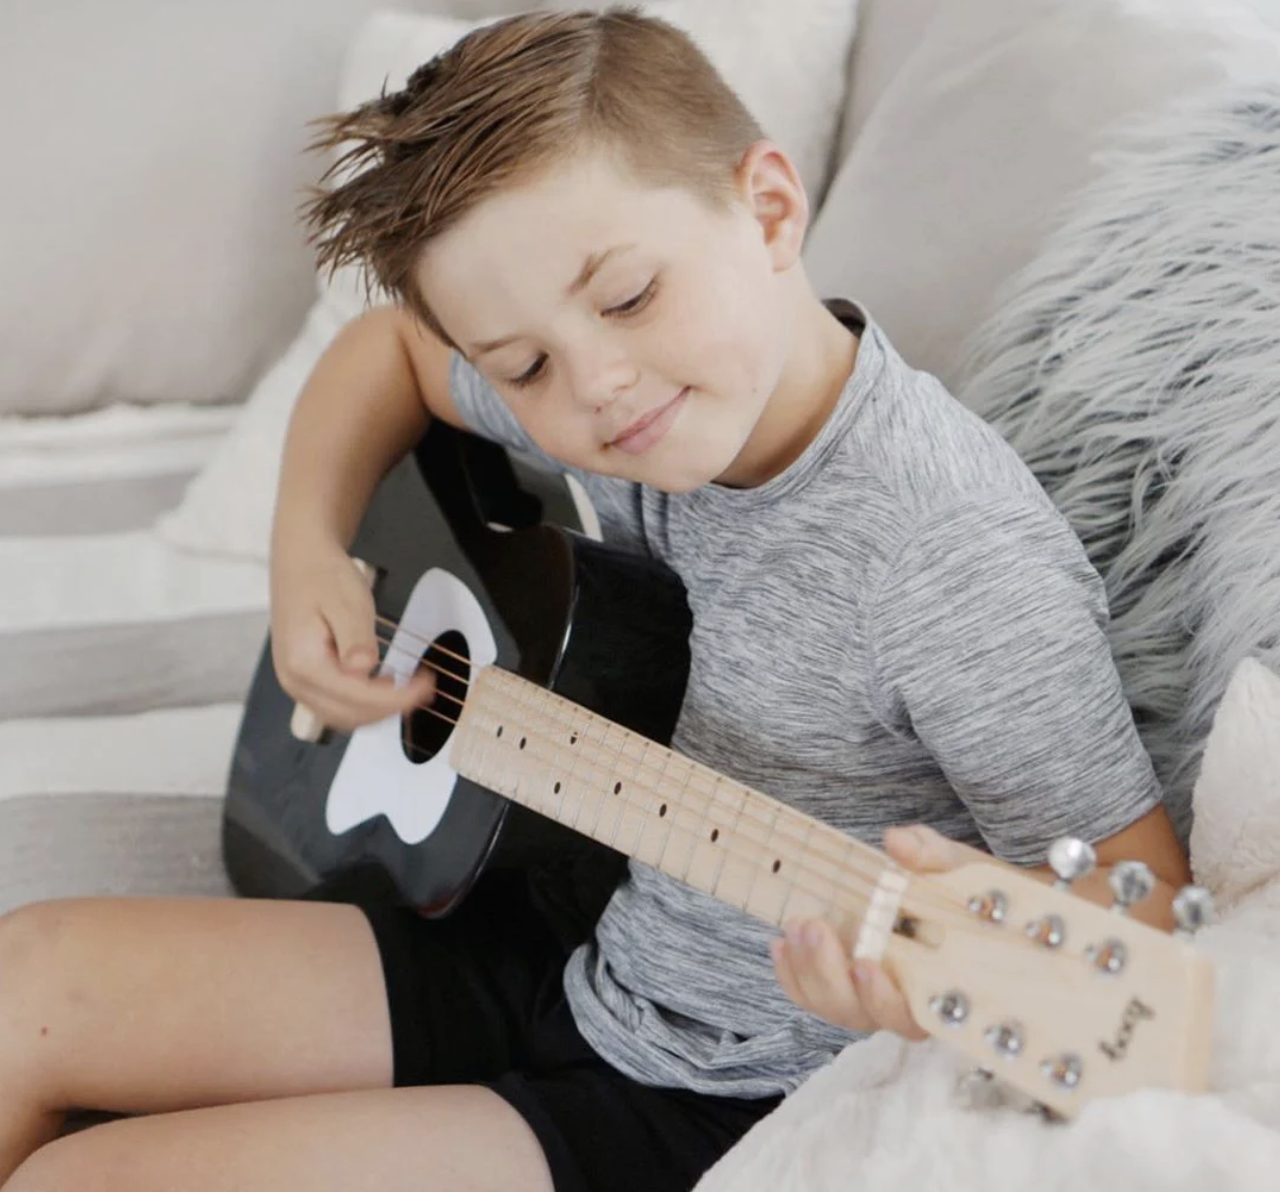 A kid playing the black guitar